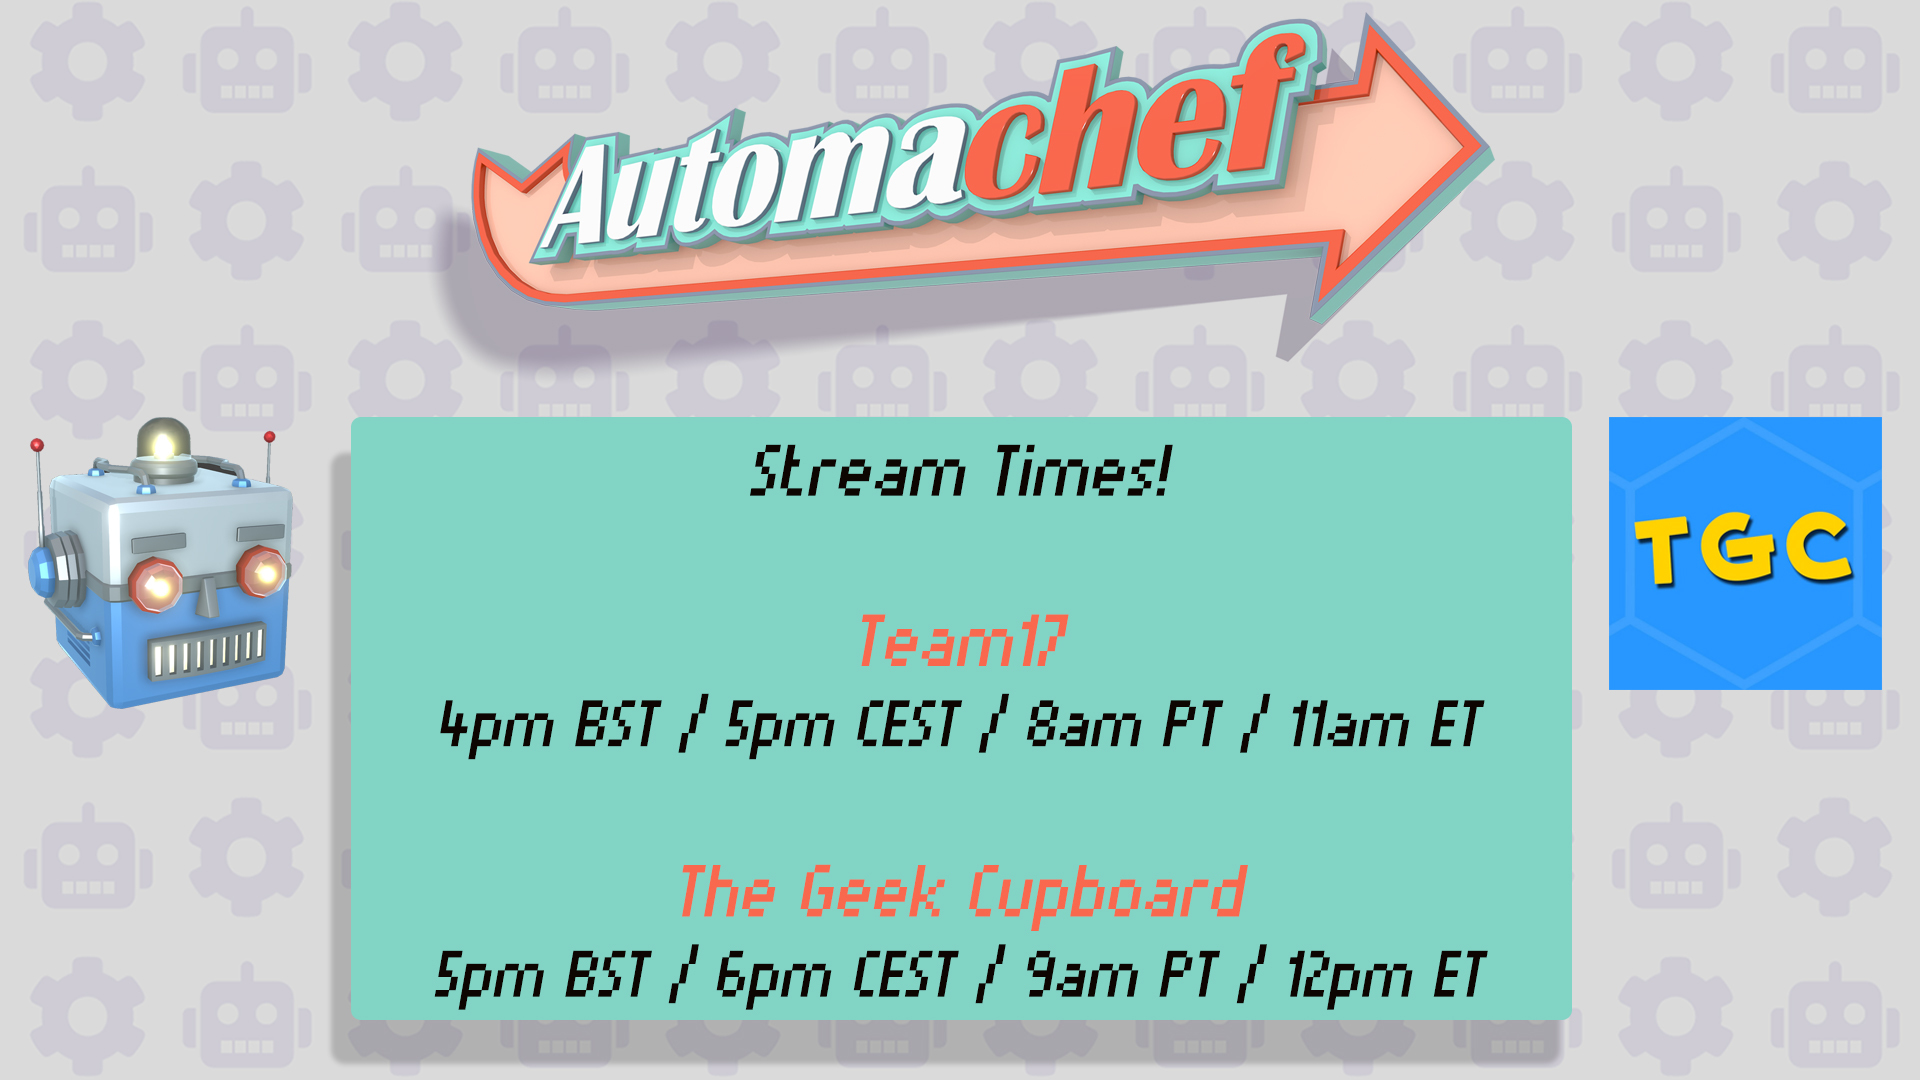 4Pm Bst automachef :: automachef launches 23rd july & free demo!